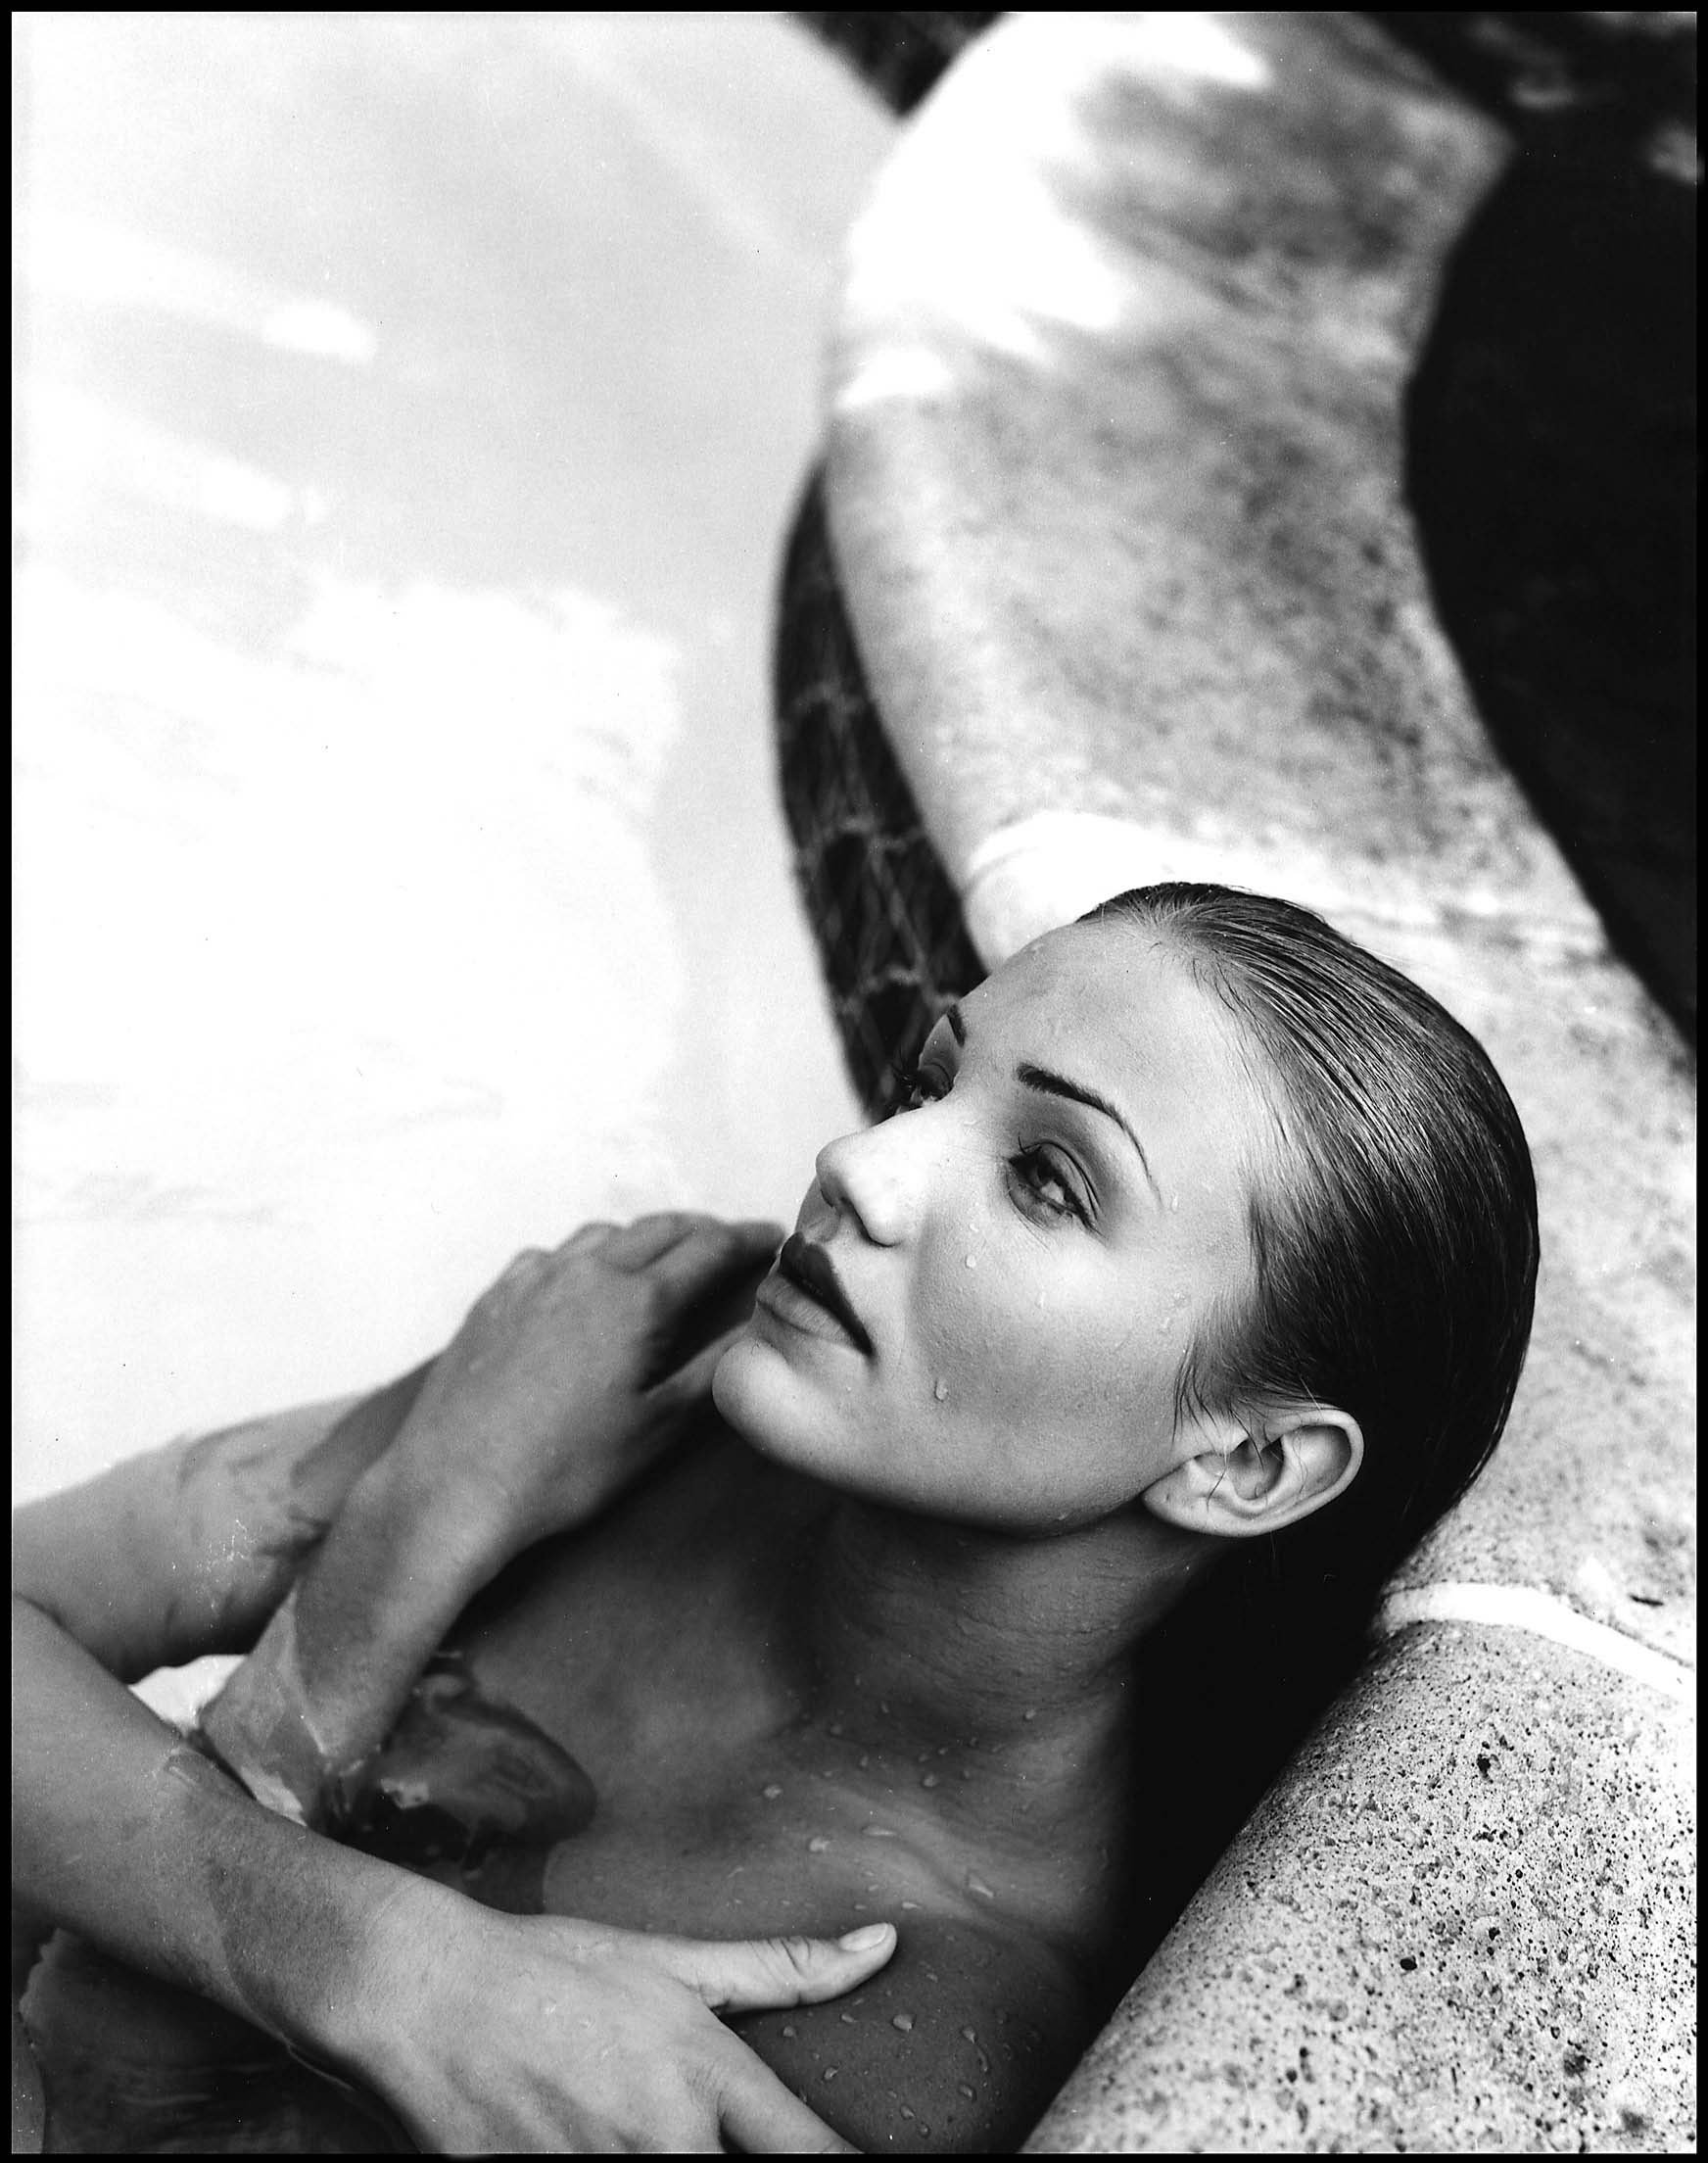 55410_Cameron_Diaz_-_Topless_photoshoot_in_a_swimming_pool0008_123_71lo.jpg